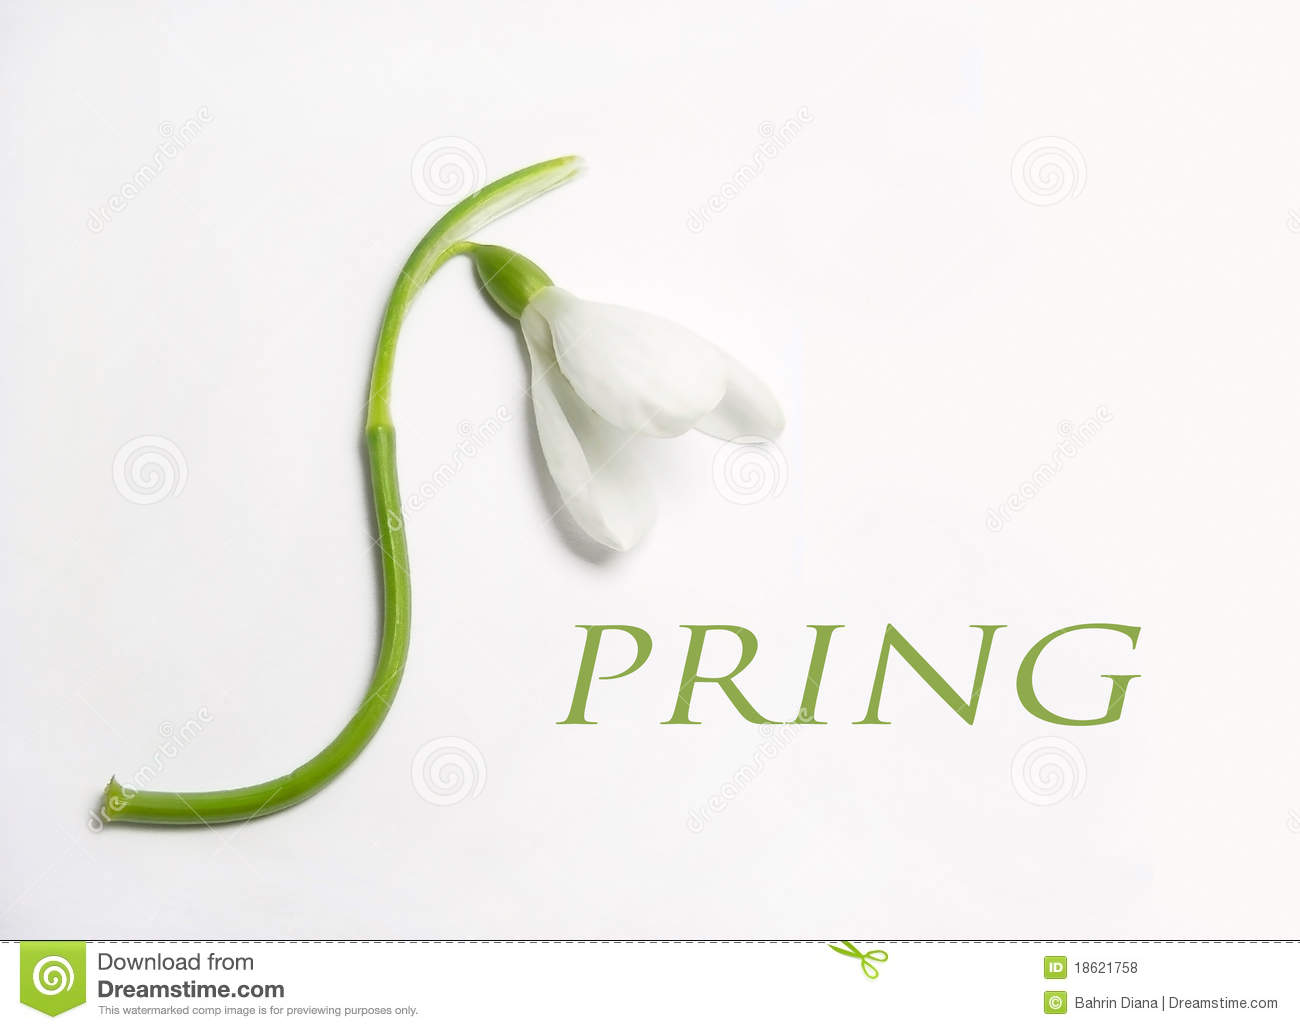 snowdrop in the shape of S letter forming the word Spring.